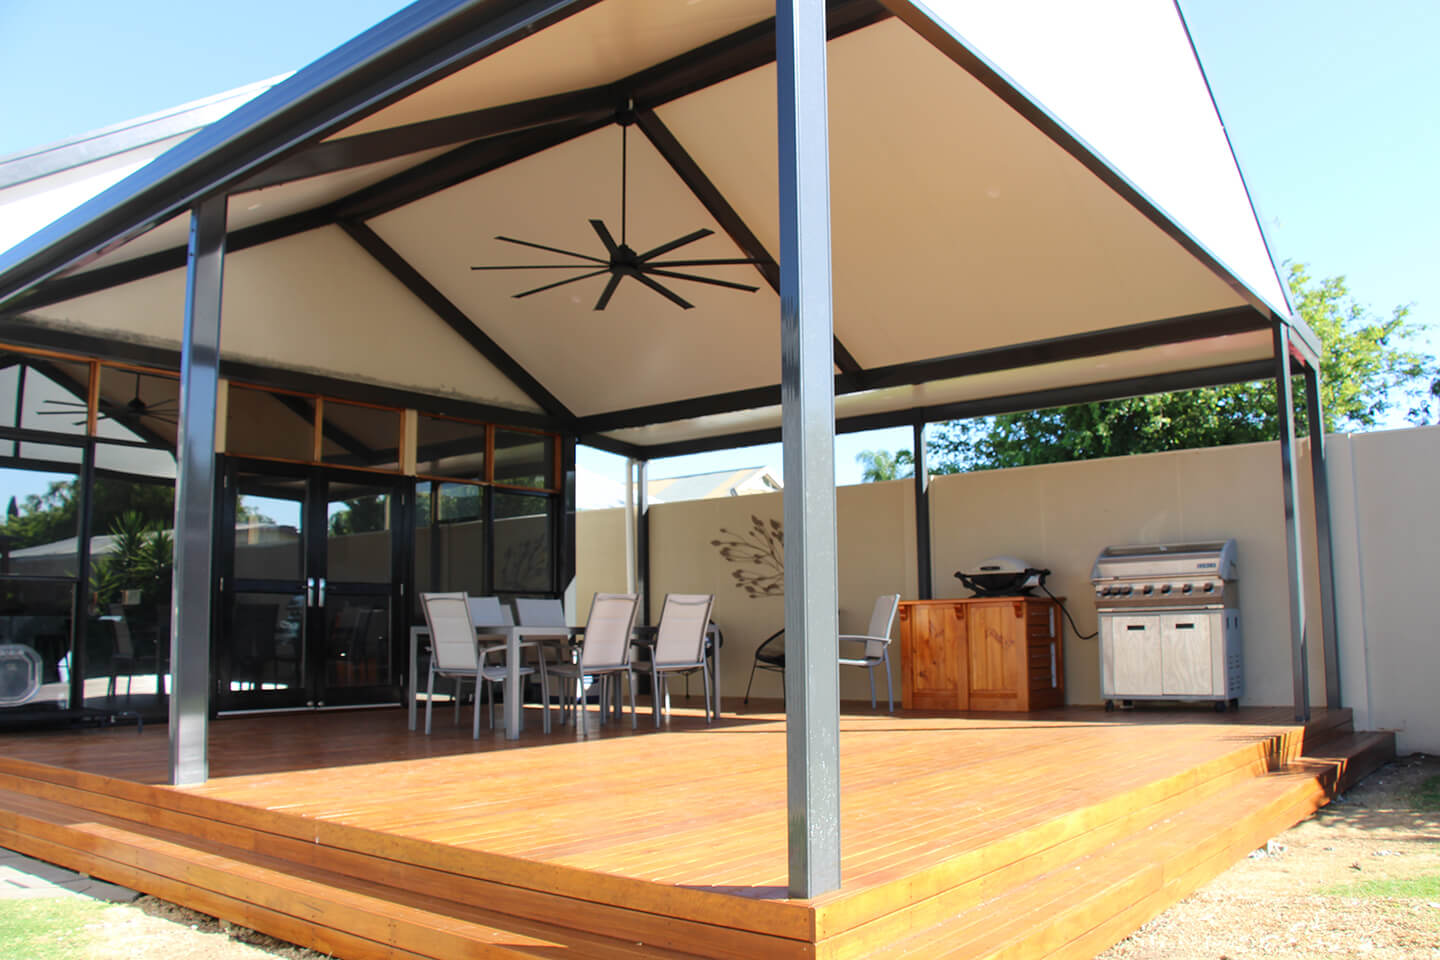 Photo of a Verandah in Adelaide 1